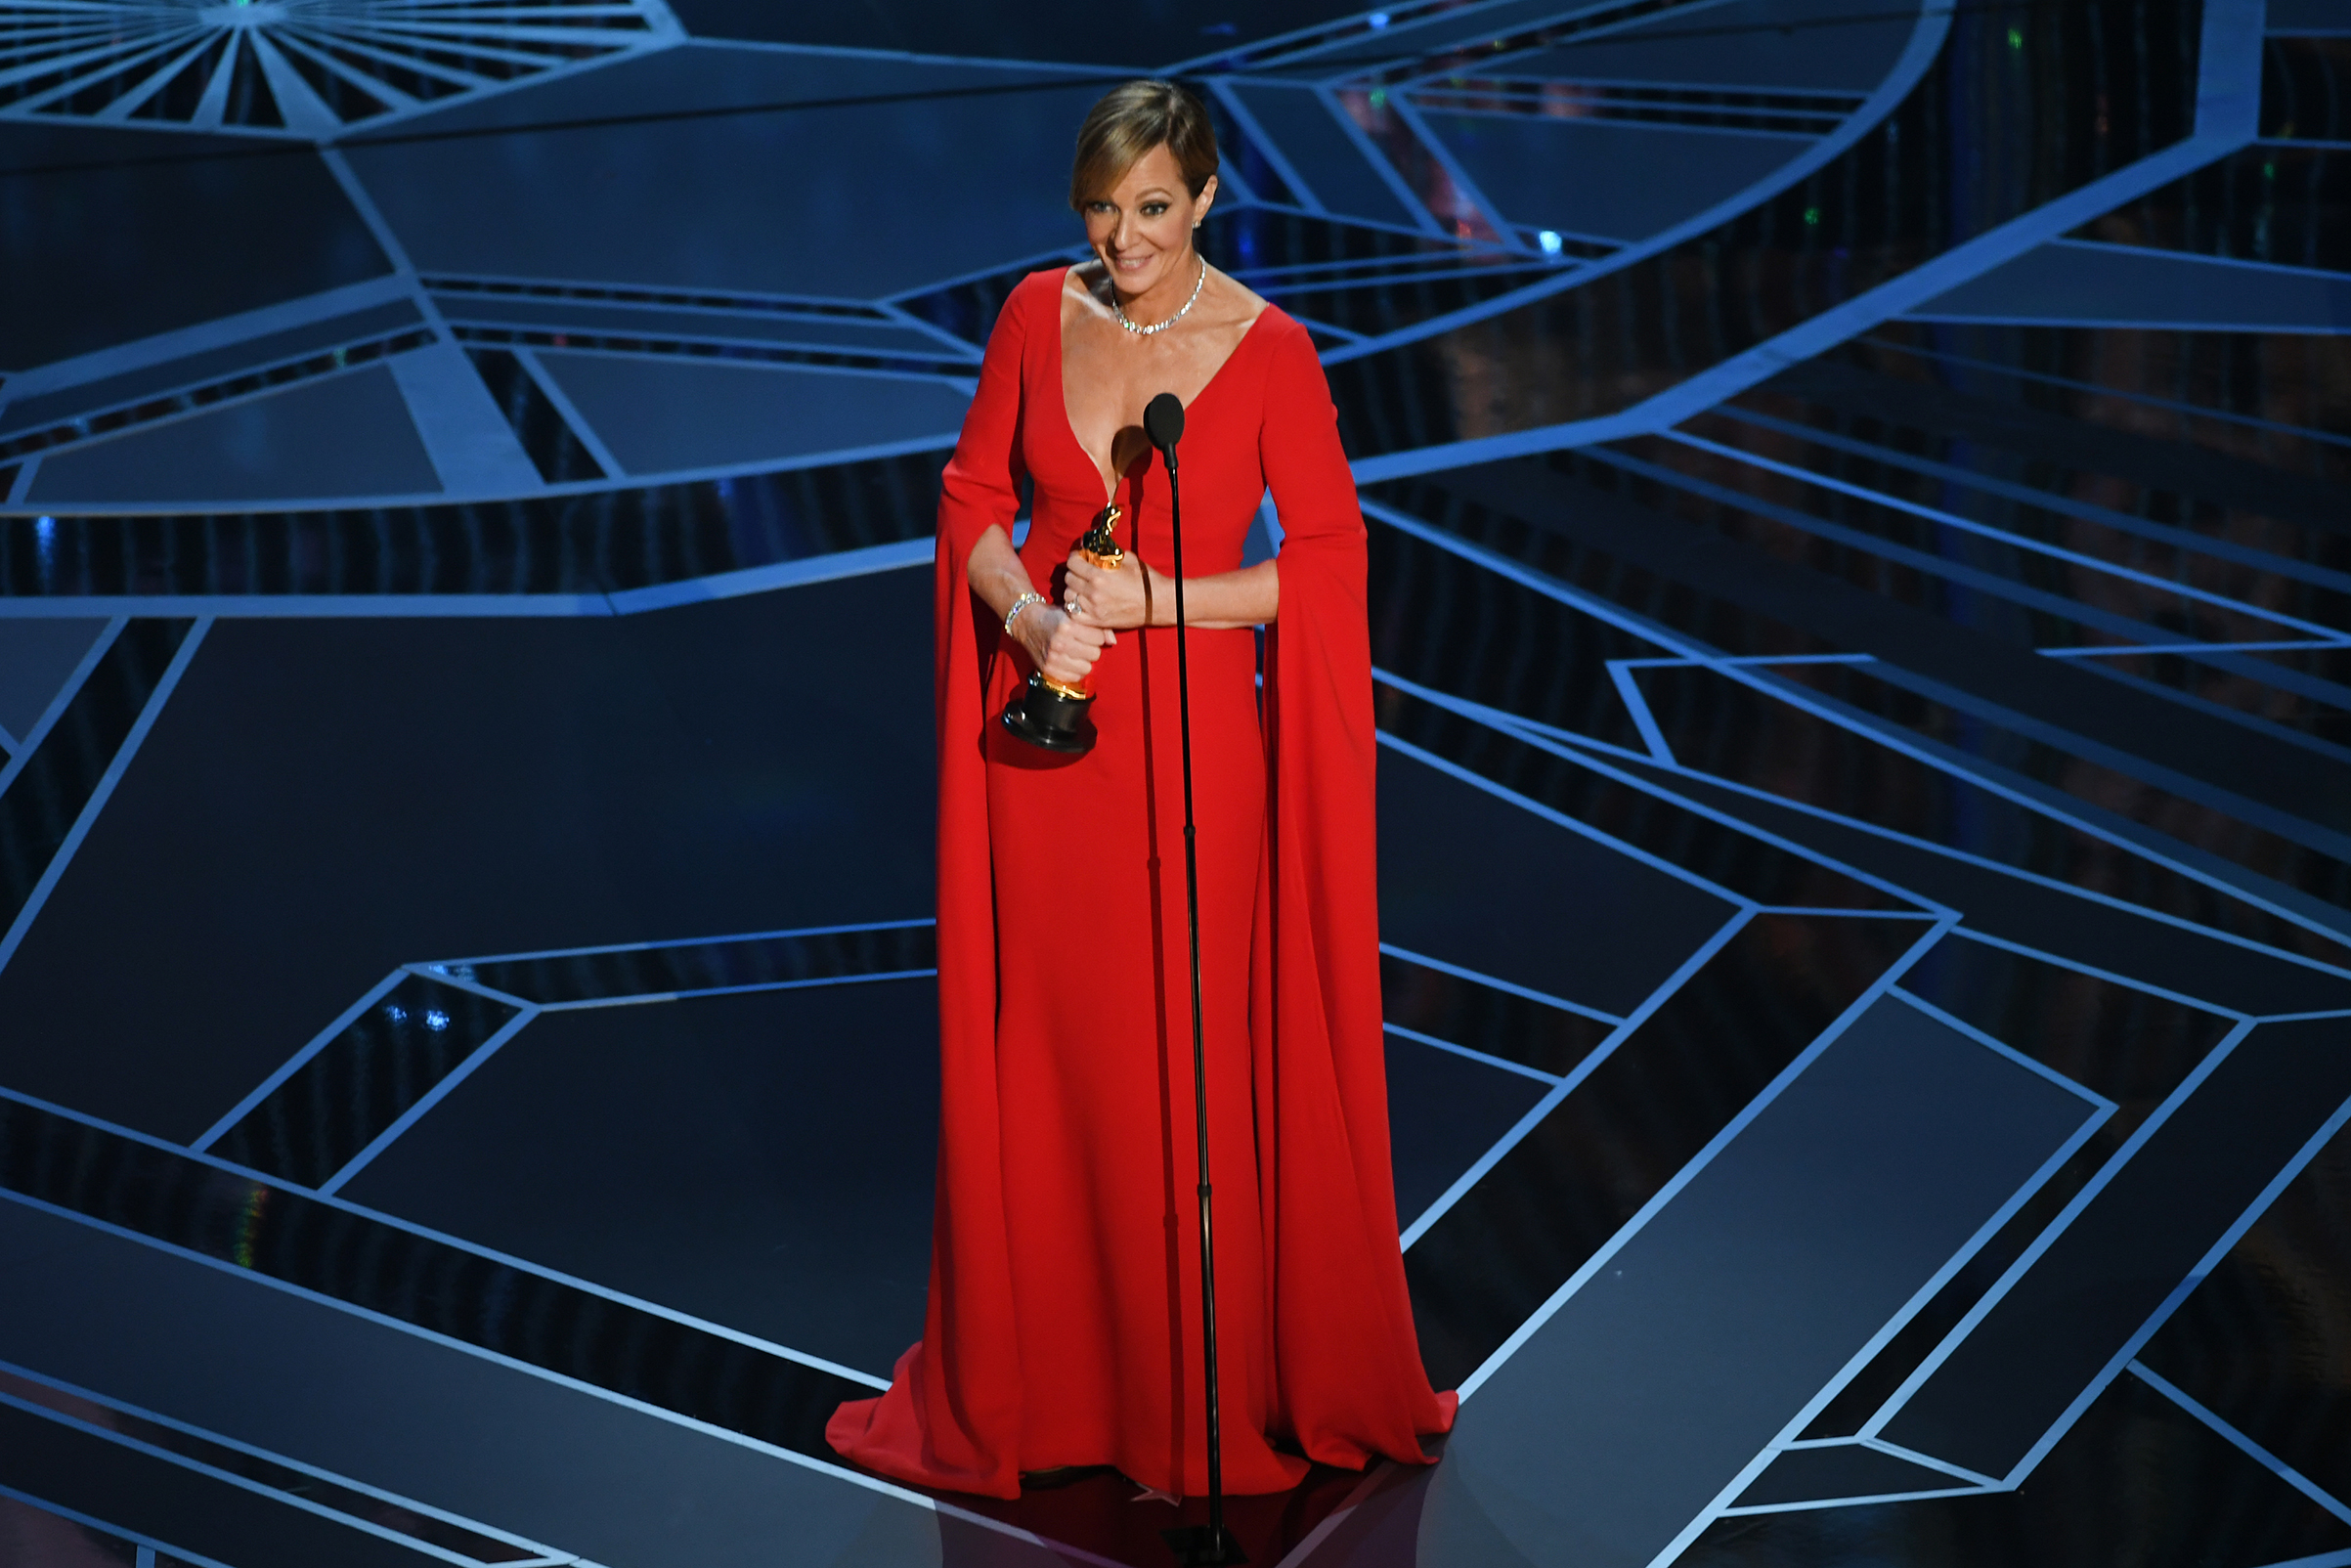 Actor Allison Janney accepts Best Supporting Actress for 'I, Tonya' onstage during the 90th Annual Academy Awards at the Dolby Theatre at Hollywood & Highland Center on March 4, 2018 in Hollywood.